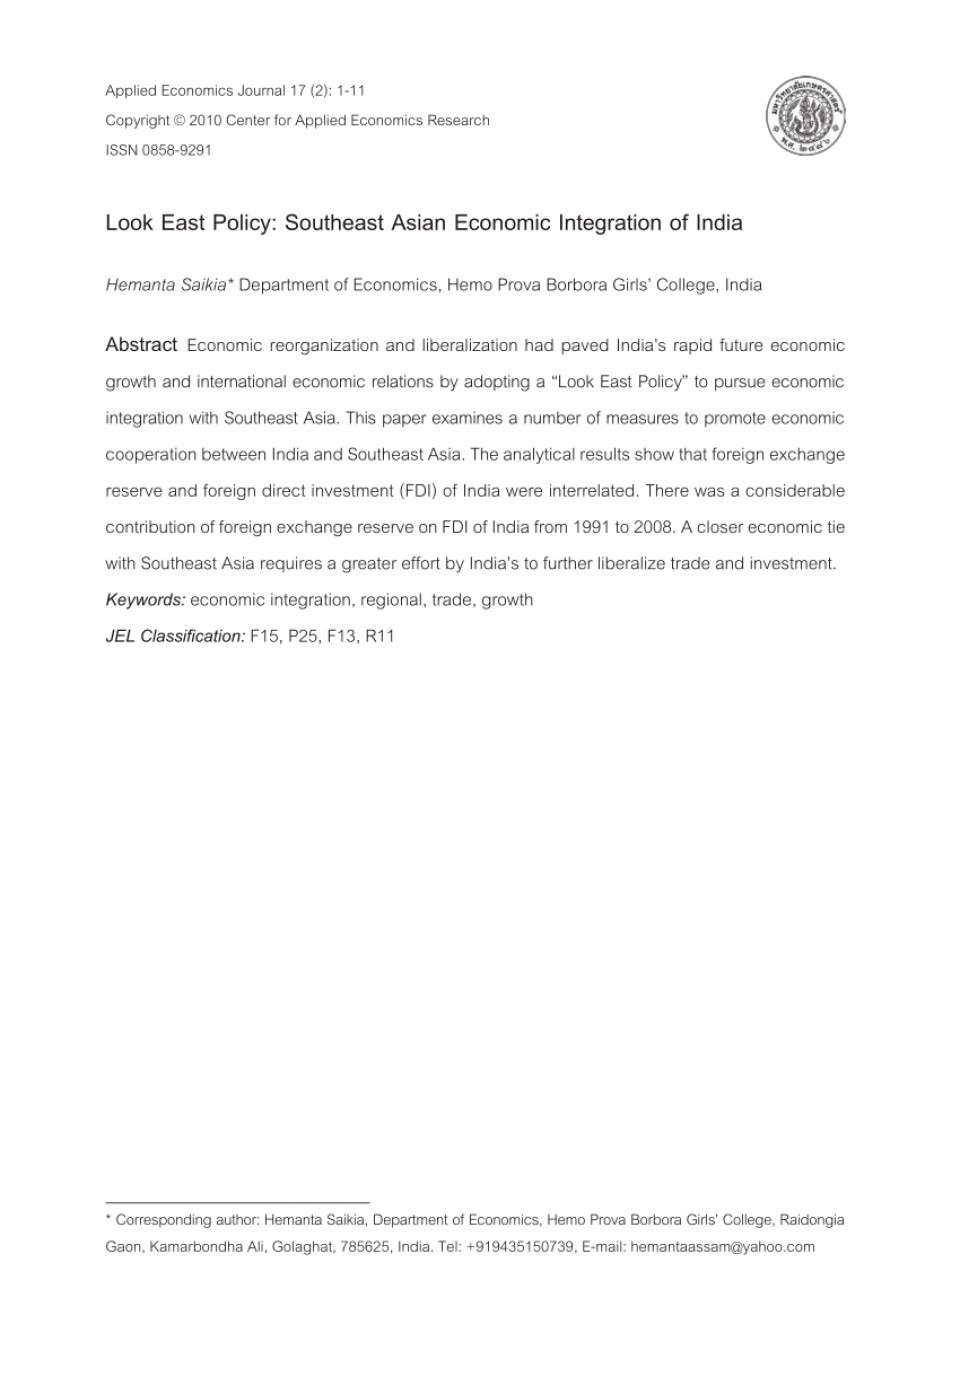 005 Economic Research Papers India Paper Impressive Indian Scholarly Articles On In 960